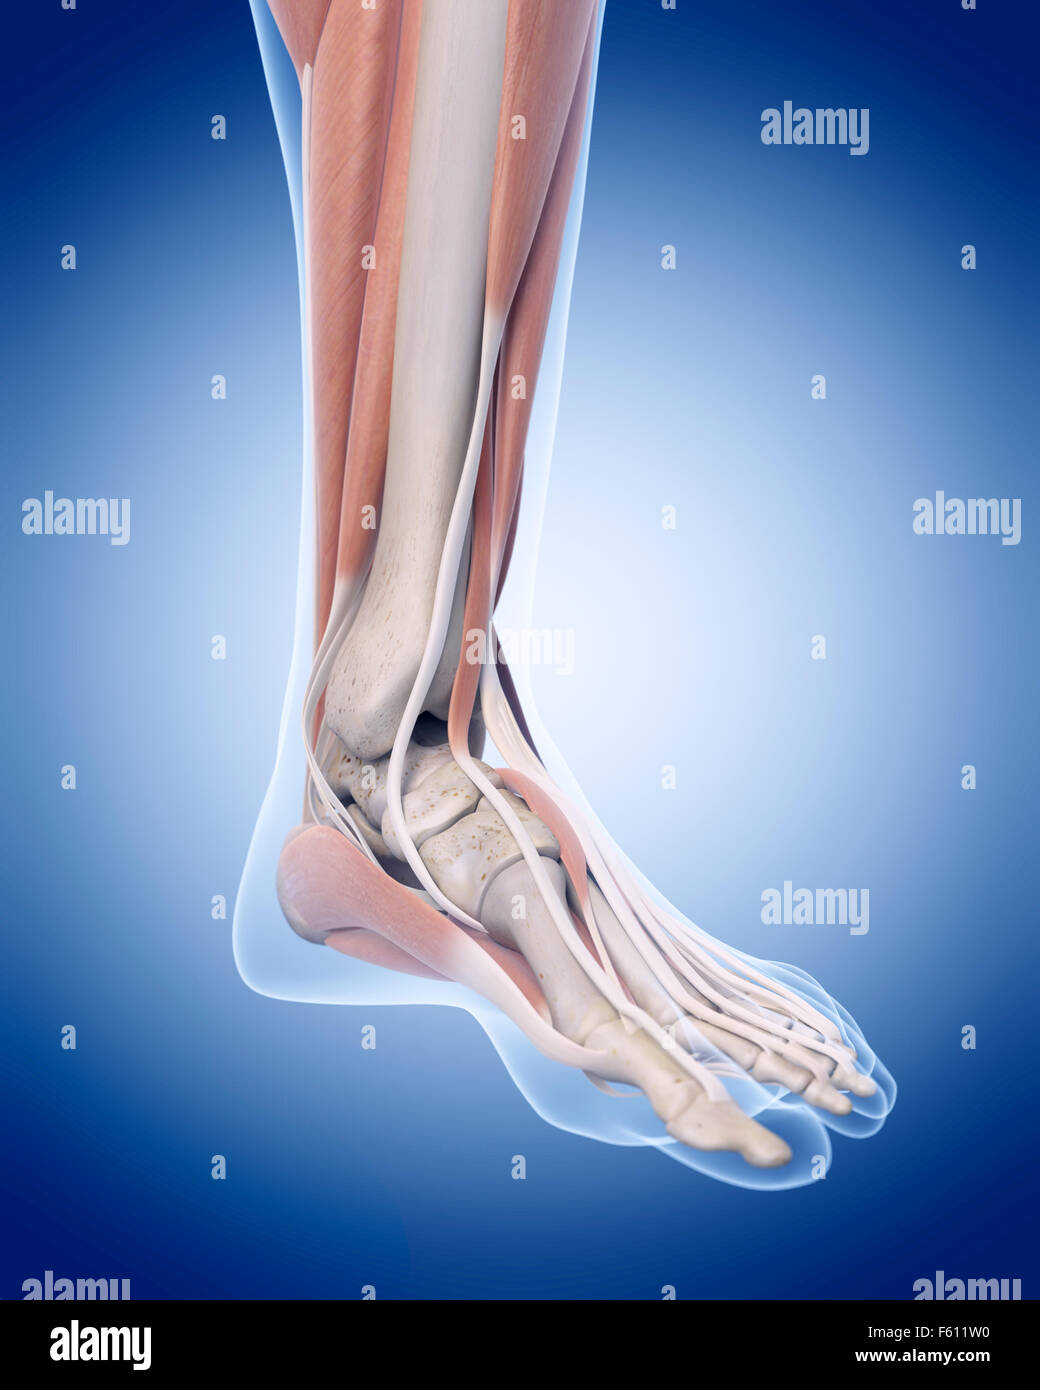 Human Muscle Foot Anatomy Stock Photos & Human Muscle Foot Anatomy ...